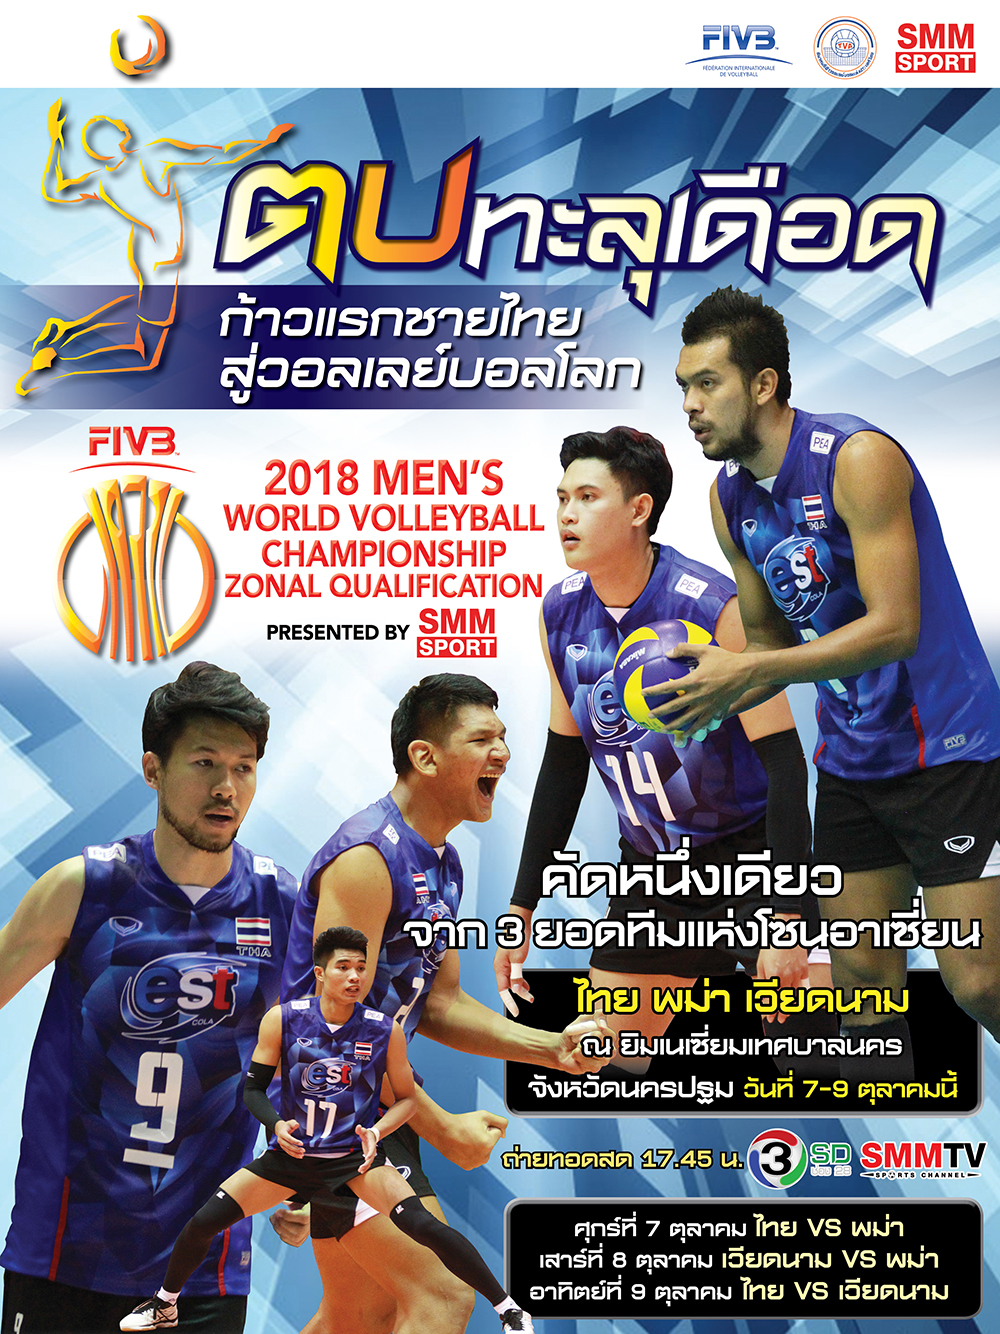 FIVB-2018-MEN_S-World-Volleyball-Championship1000